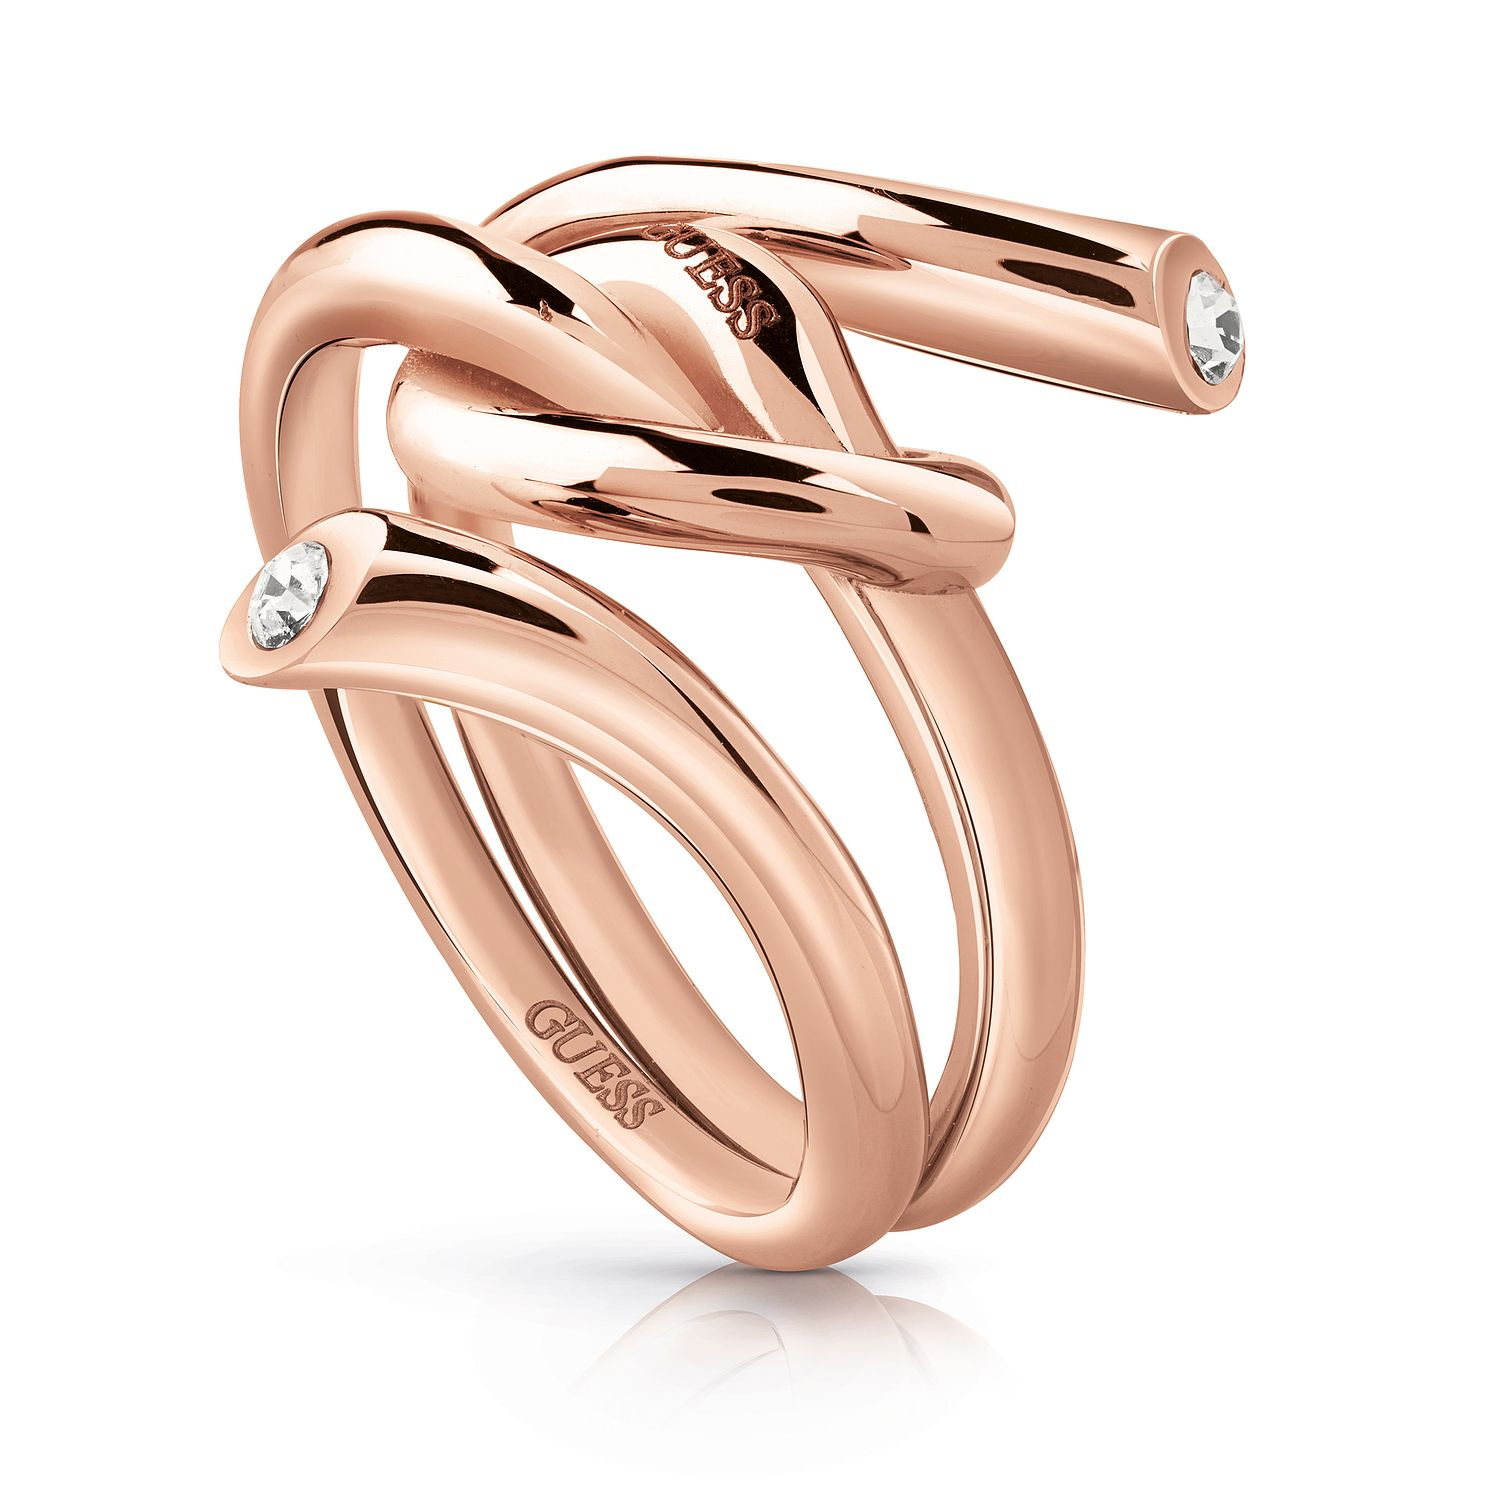 Guess Rose Gold Tone Swarovski Crystal Knot Ring - Product number 5922917